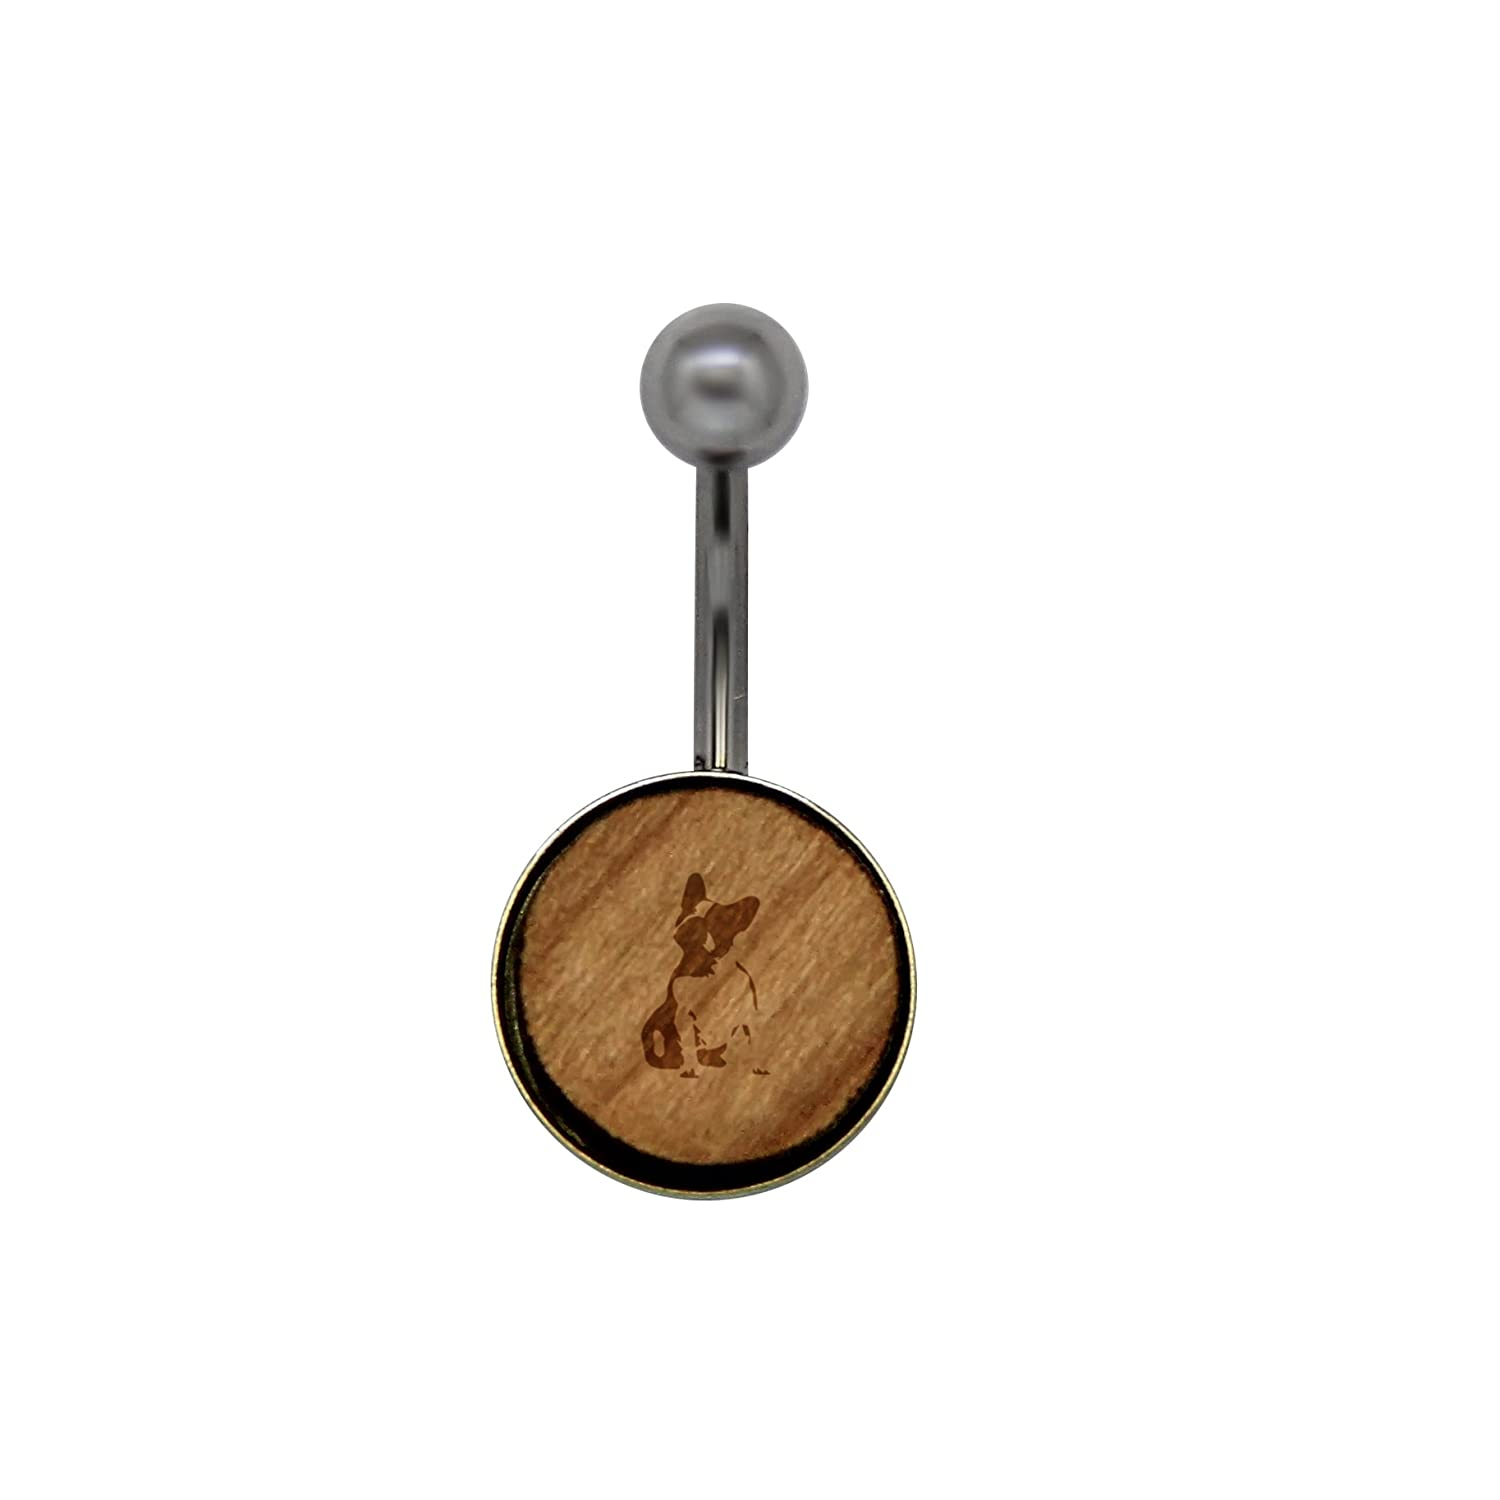 French Bulldog Surgical Stainless Steel Belly Button Rings Size 14 Gauge Wooden Navel Ring Rustic Wood Navel Ring with Laser Engraved Design